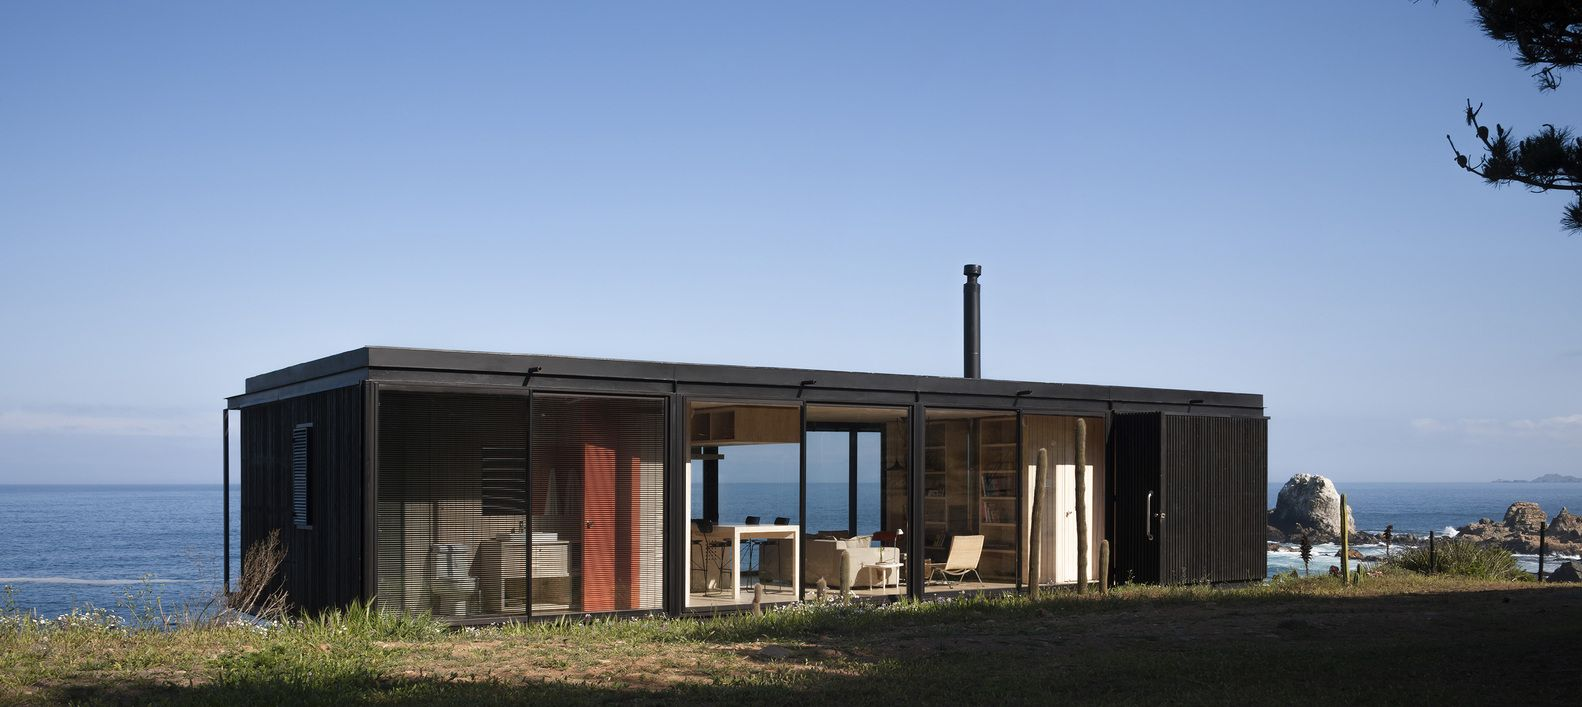 Gallery of Remote House / Felipe Assadi - 14 | Remote, Prefab and ...